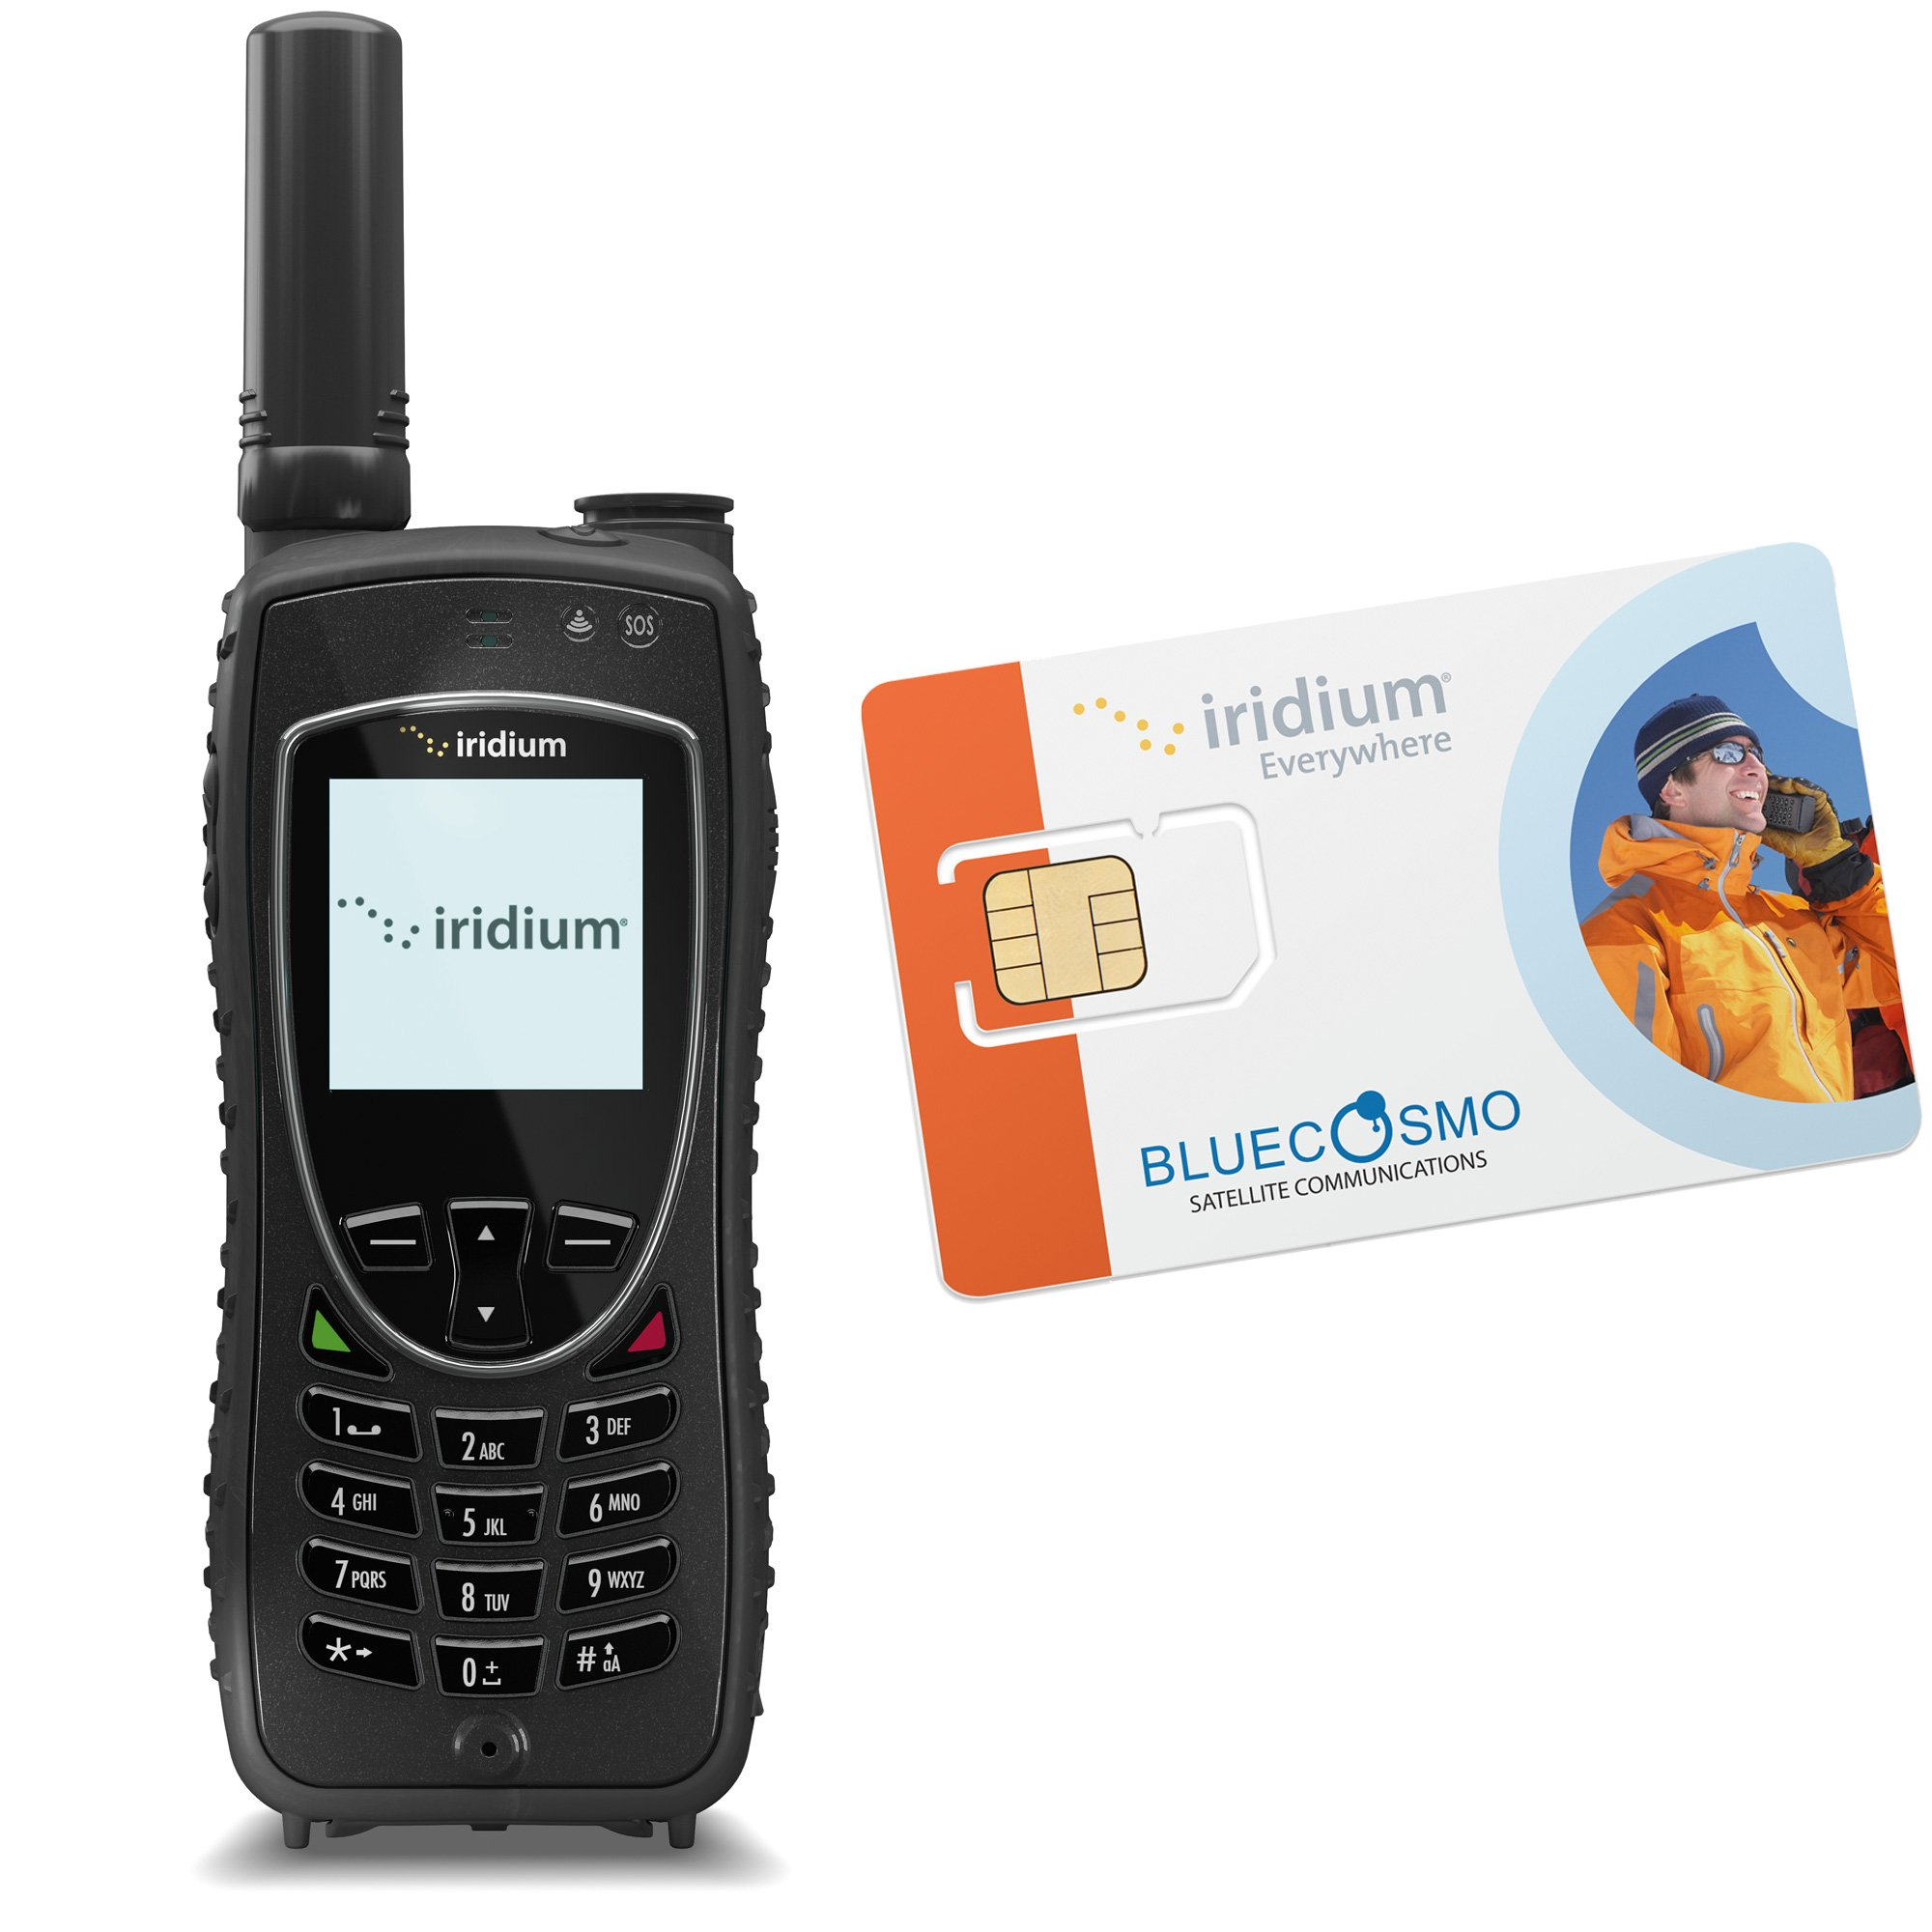 BlueCosmo Iridium Extreme Satellite Phone Kit & Monthly Service Plan SIM by BlueCosmo